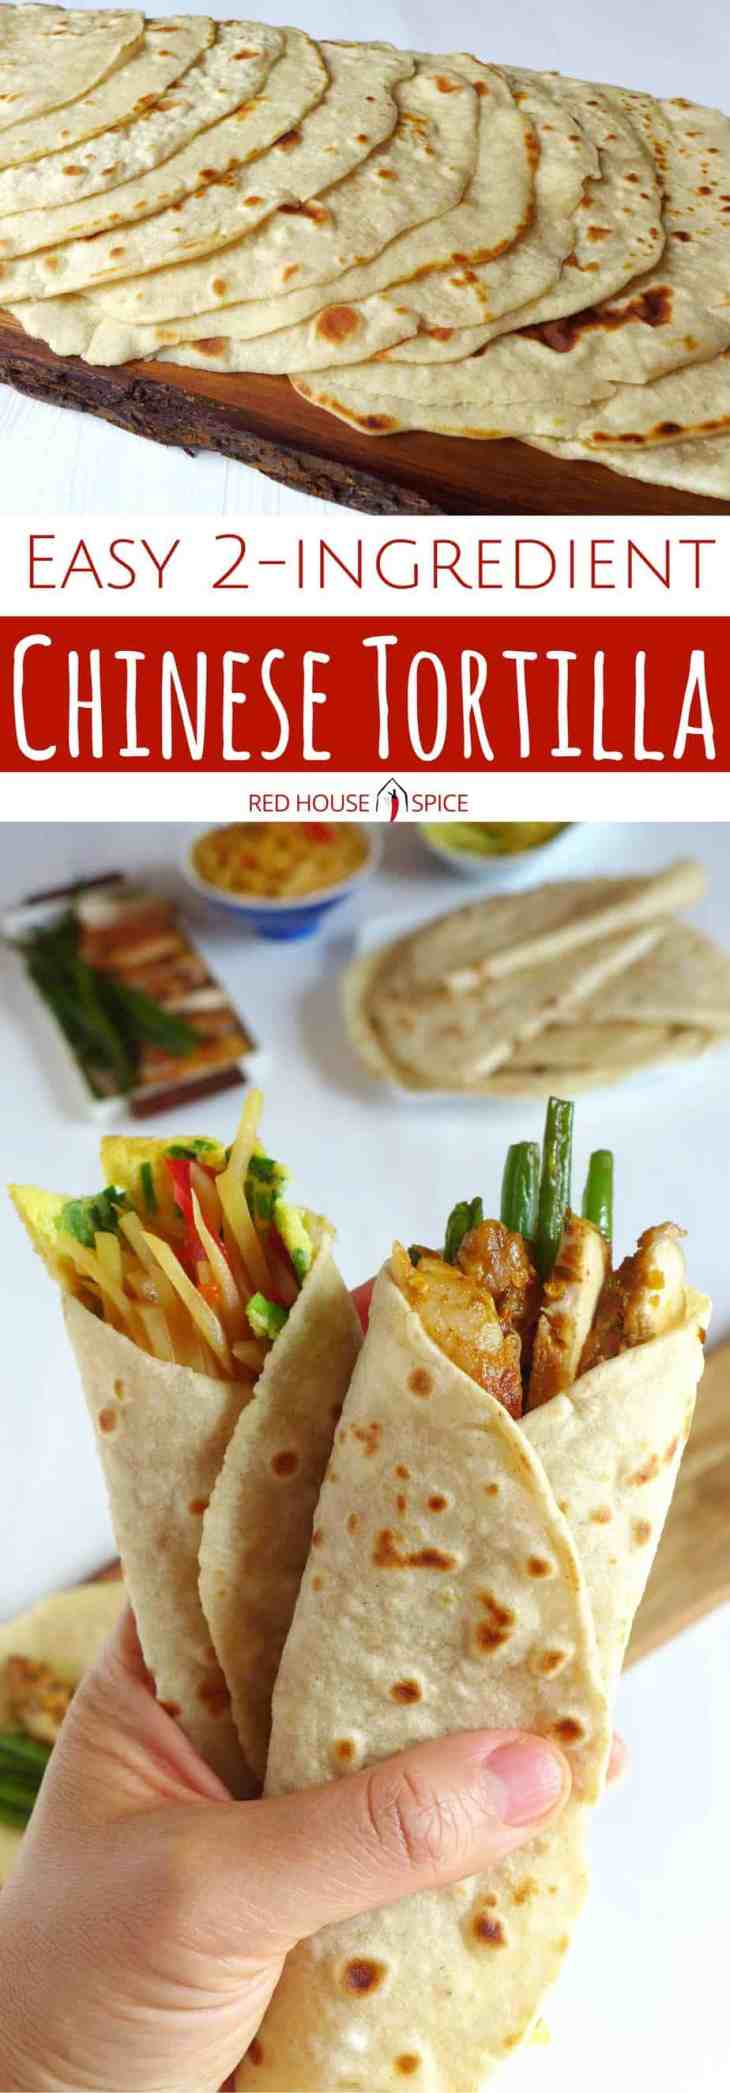 Tender, supple and very thin, Chinese tortillas (Spring pancakes) are made with only two ingredients. Perfect wrapper for any fillings of your choice.